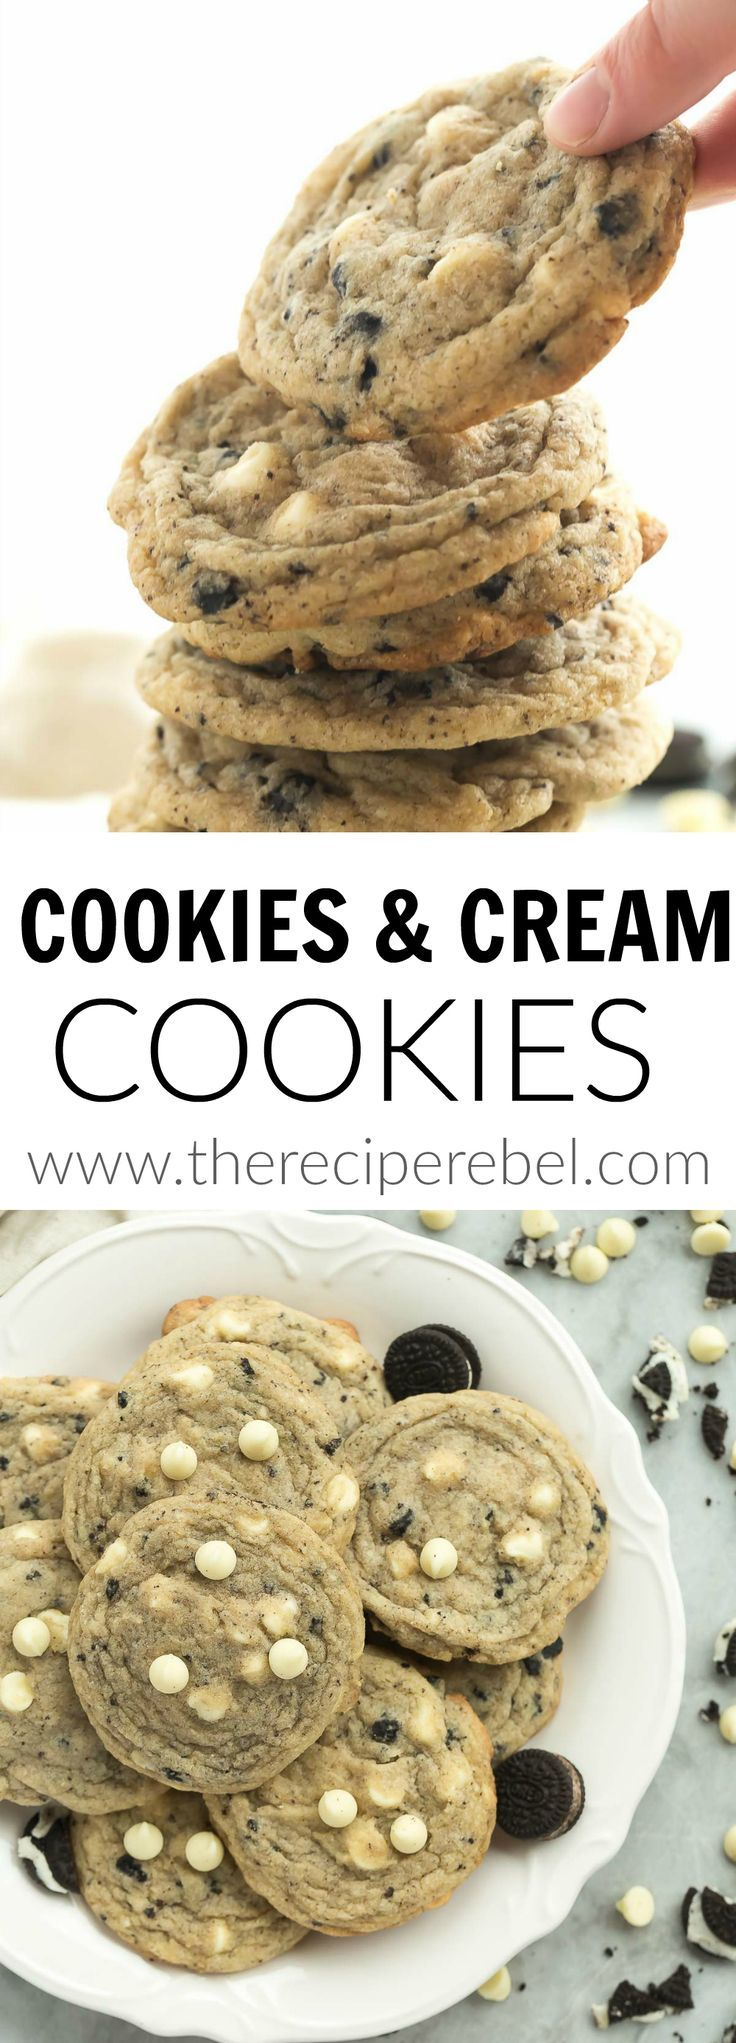 These Cookies 'n' Cream Cookies are loaded with chopped Oreos and white chocolate chips — just like the chocolate bars! They are perfectly soft and chewy!